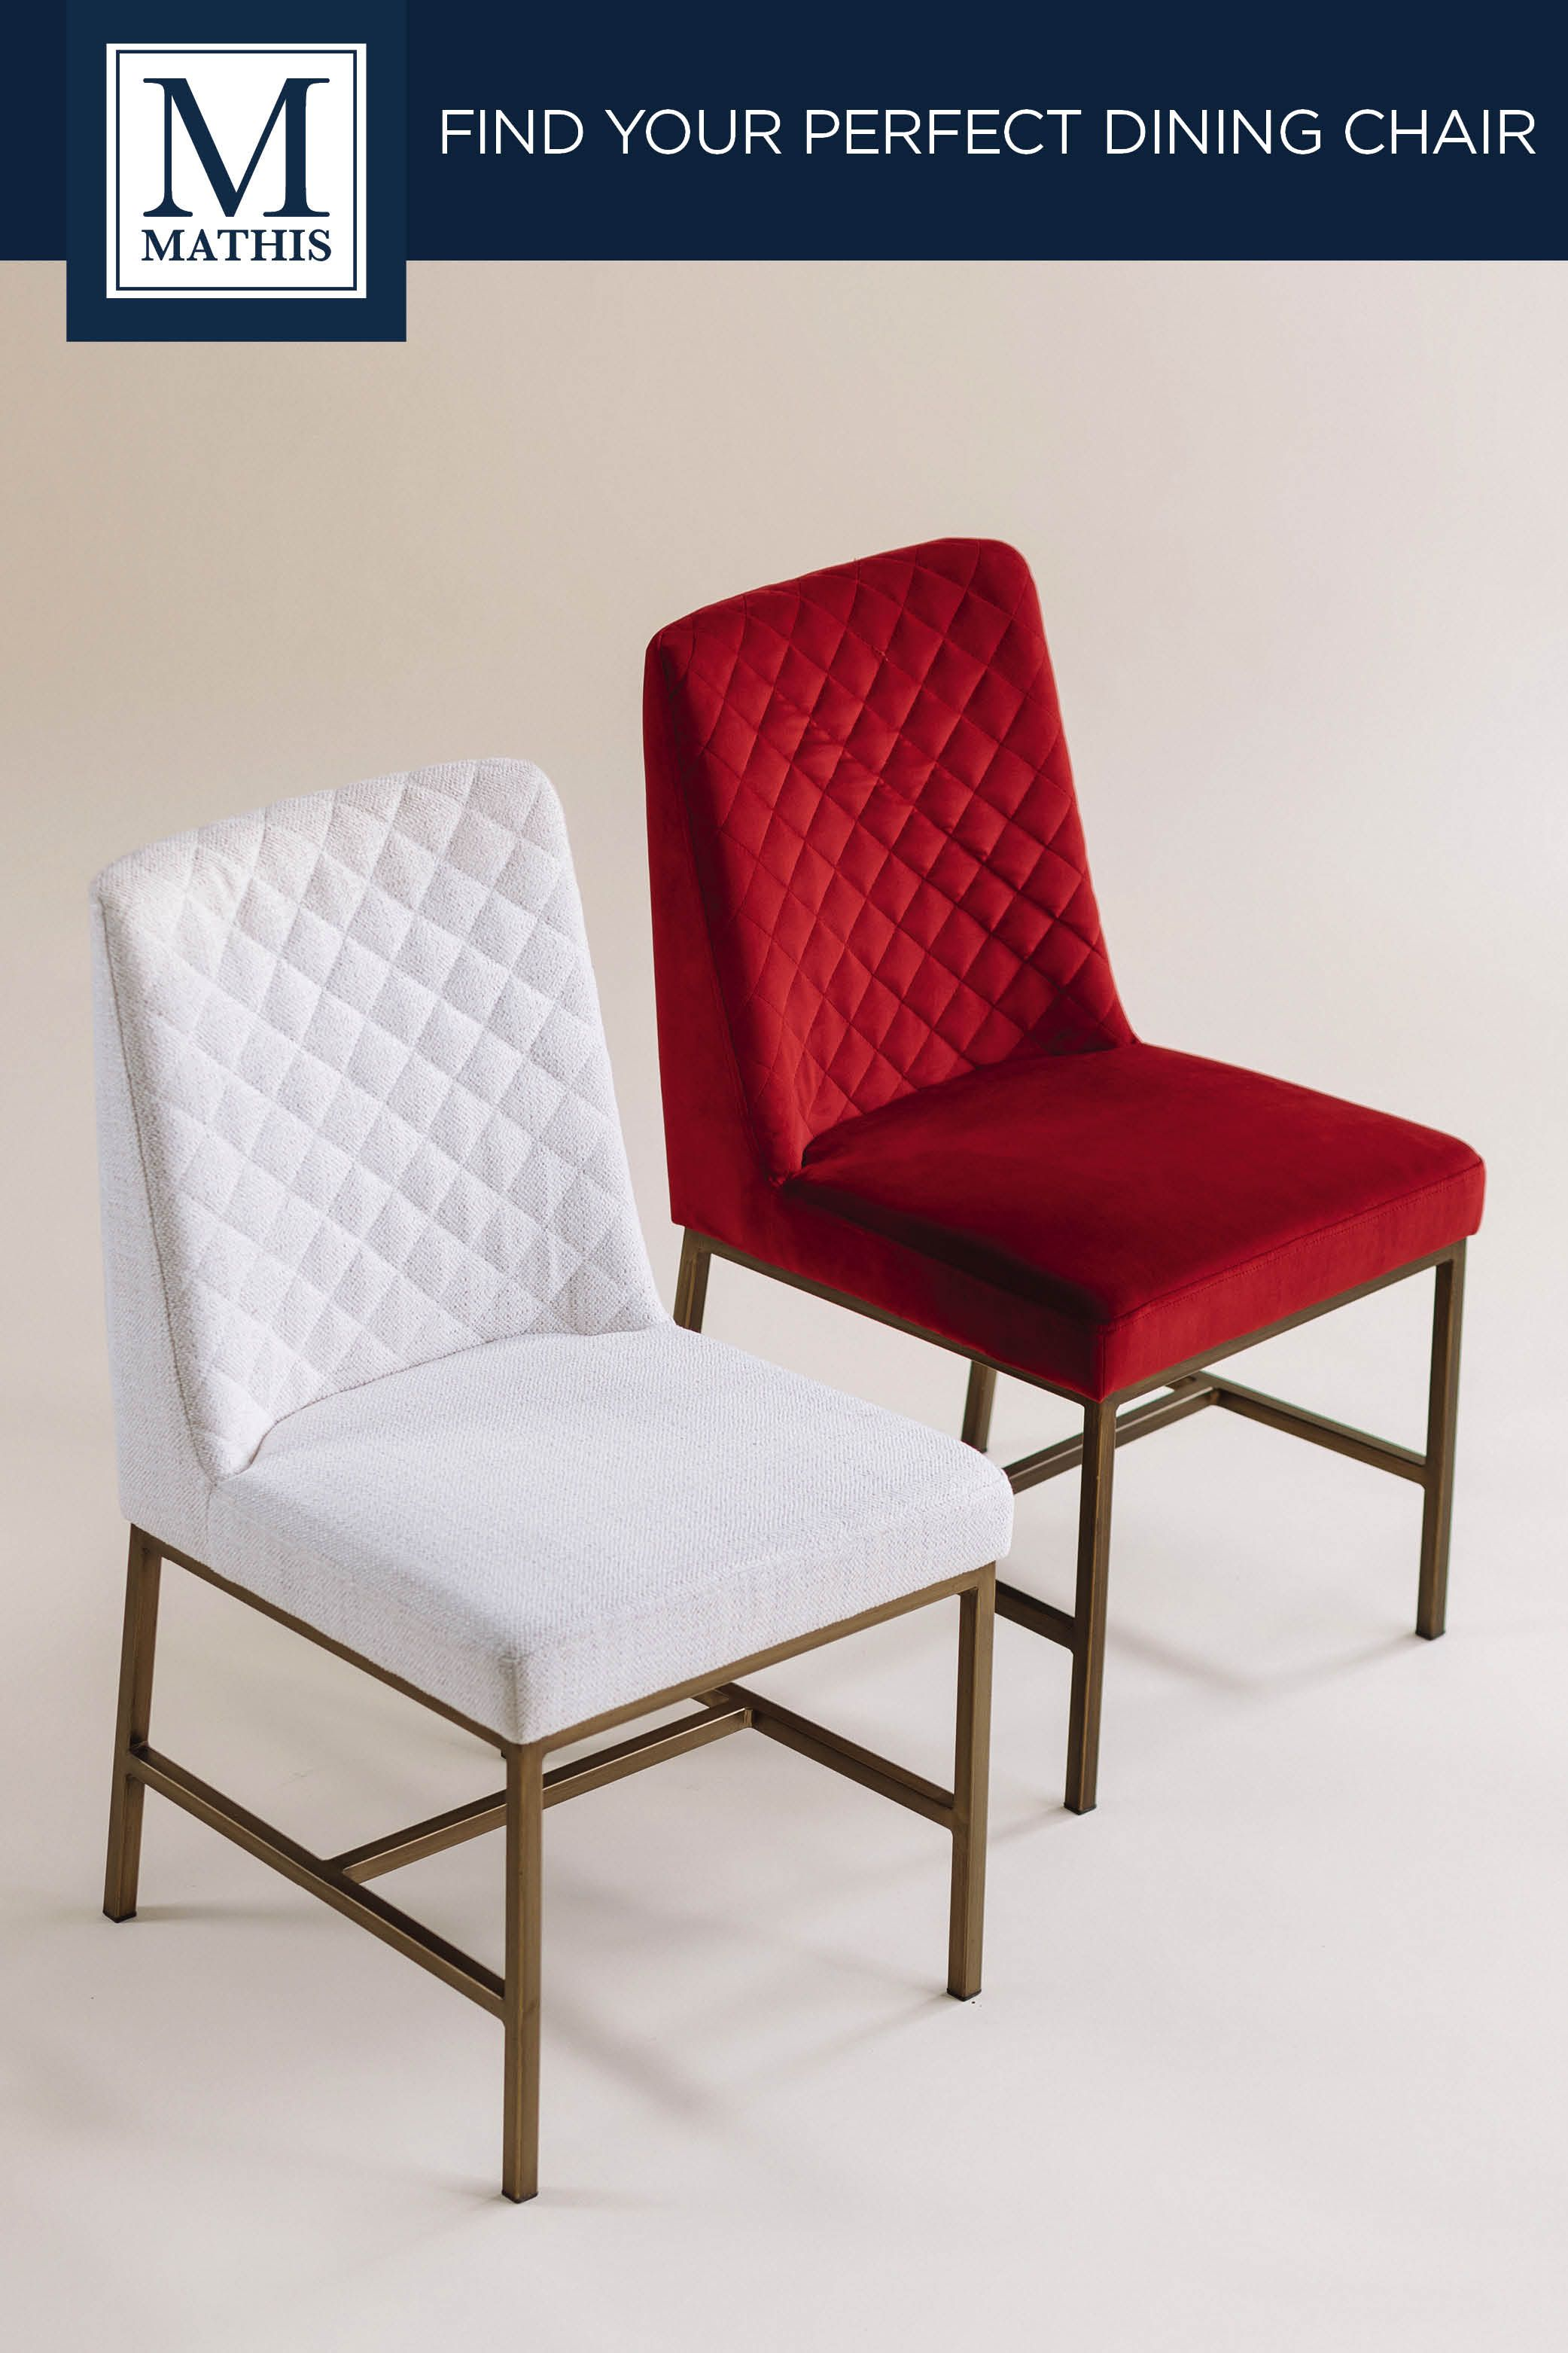 Dining Chair Tufted Dining Chairs Dining Dining Chairs